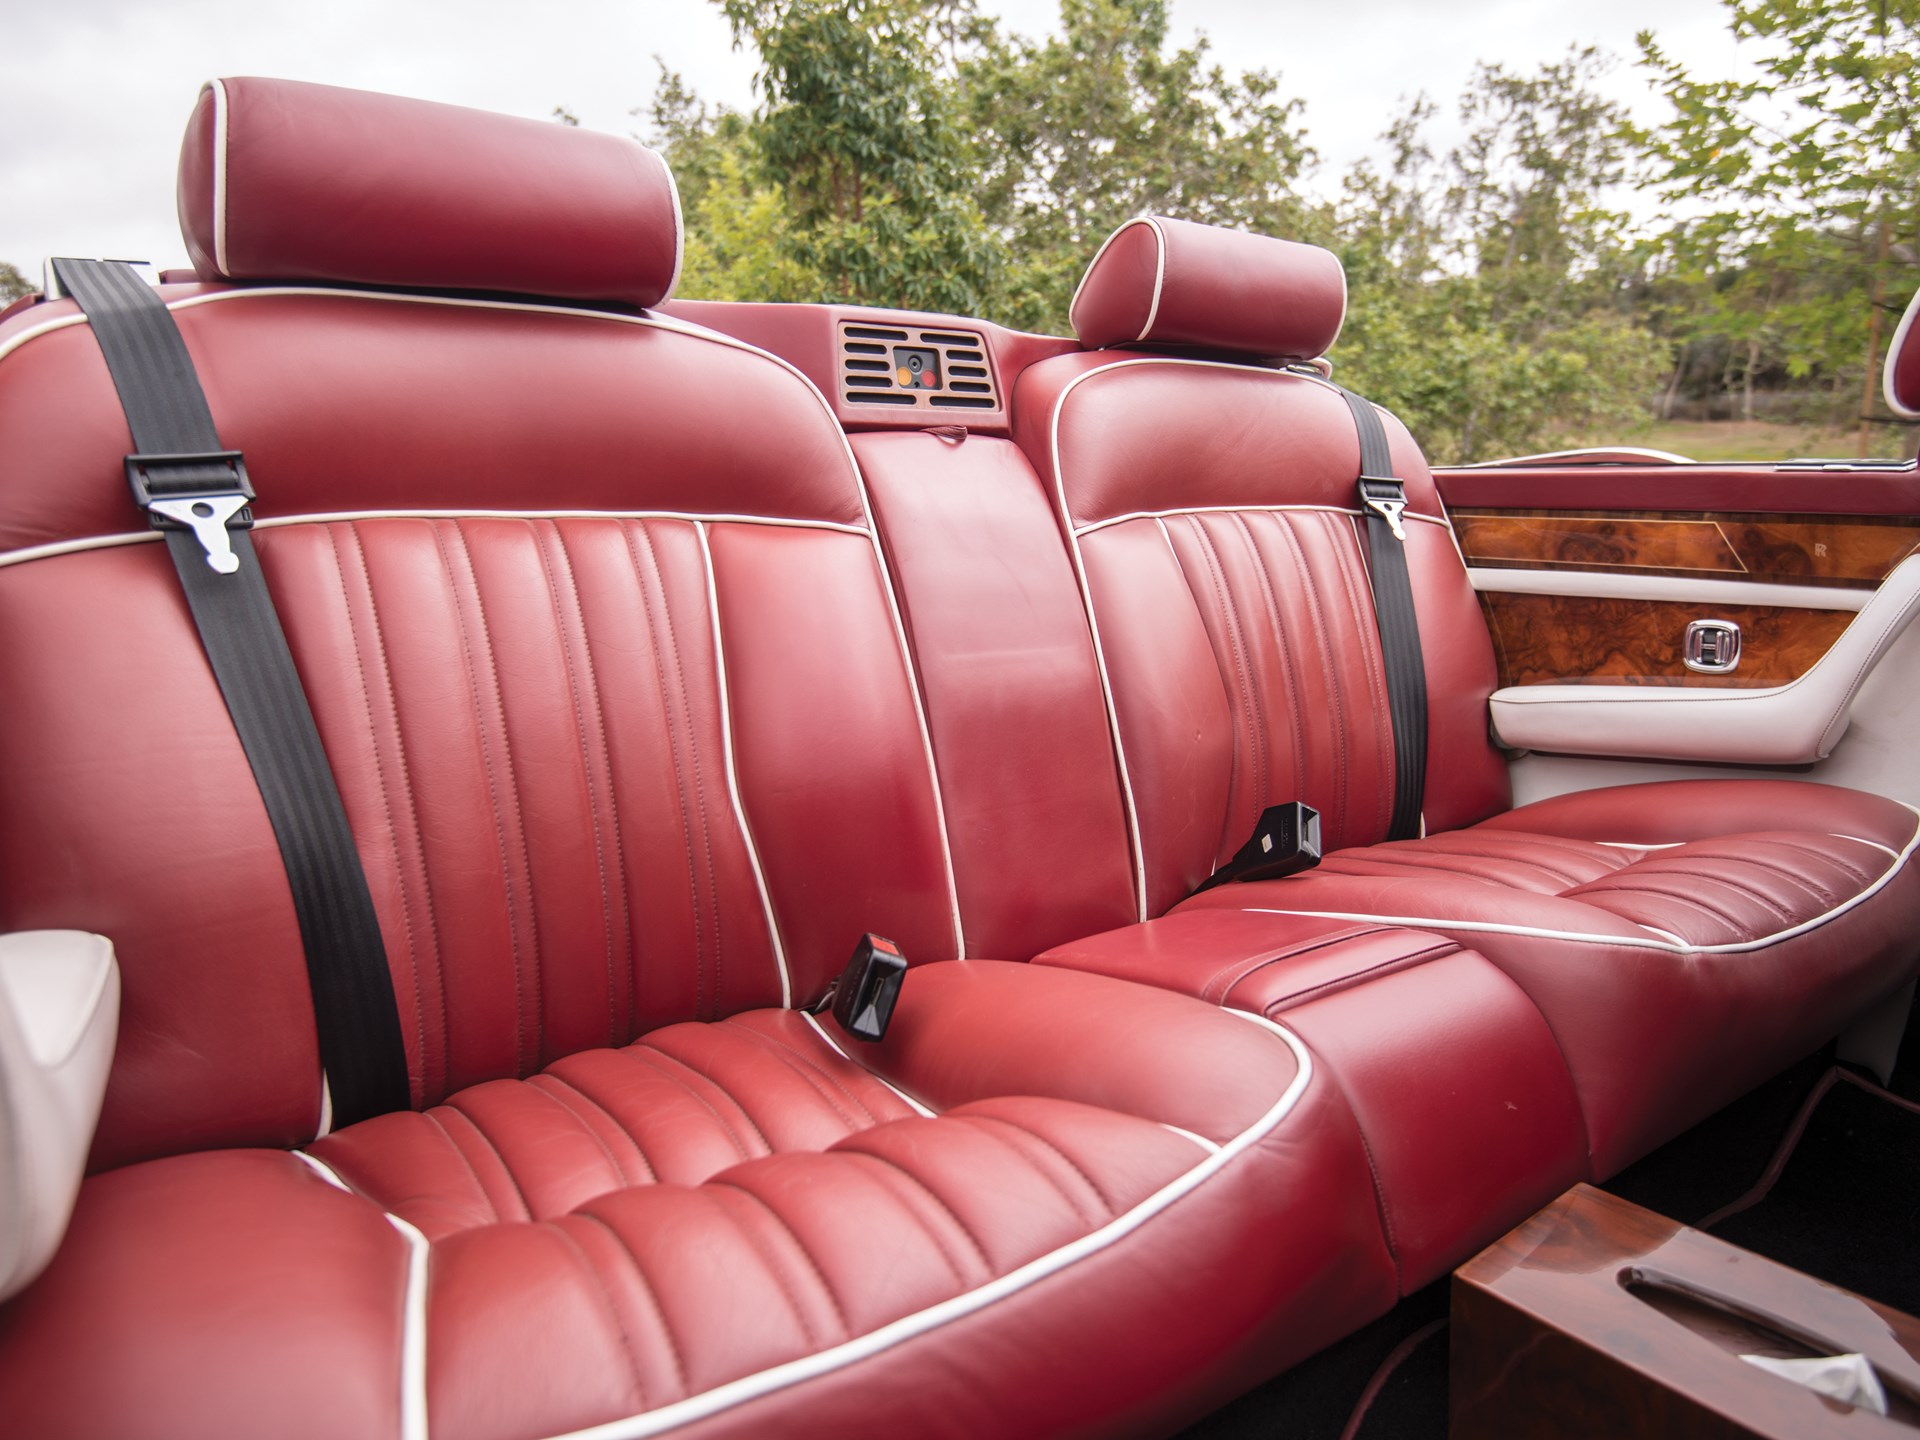 1987 Rolls-Royce Camargue Retractable Hardtop by Niko-Michael